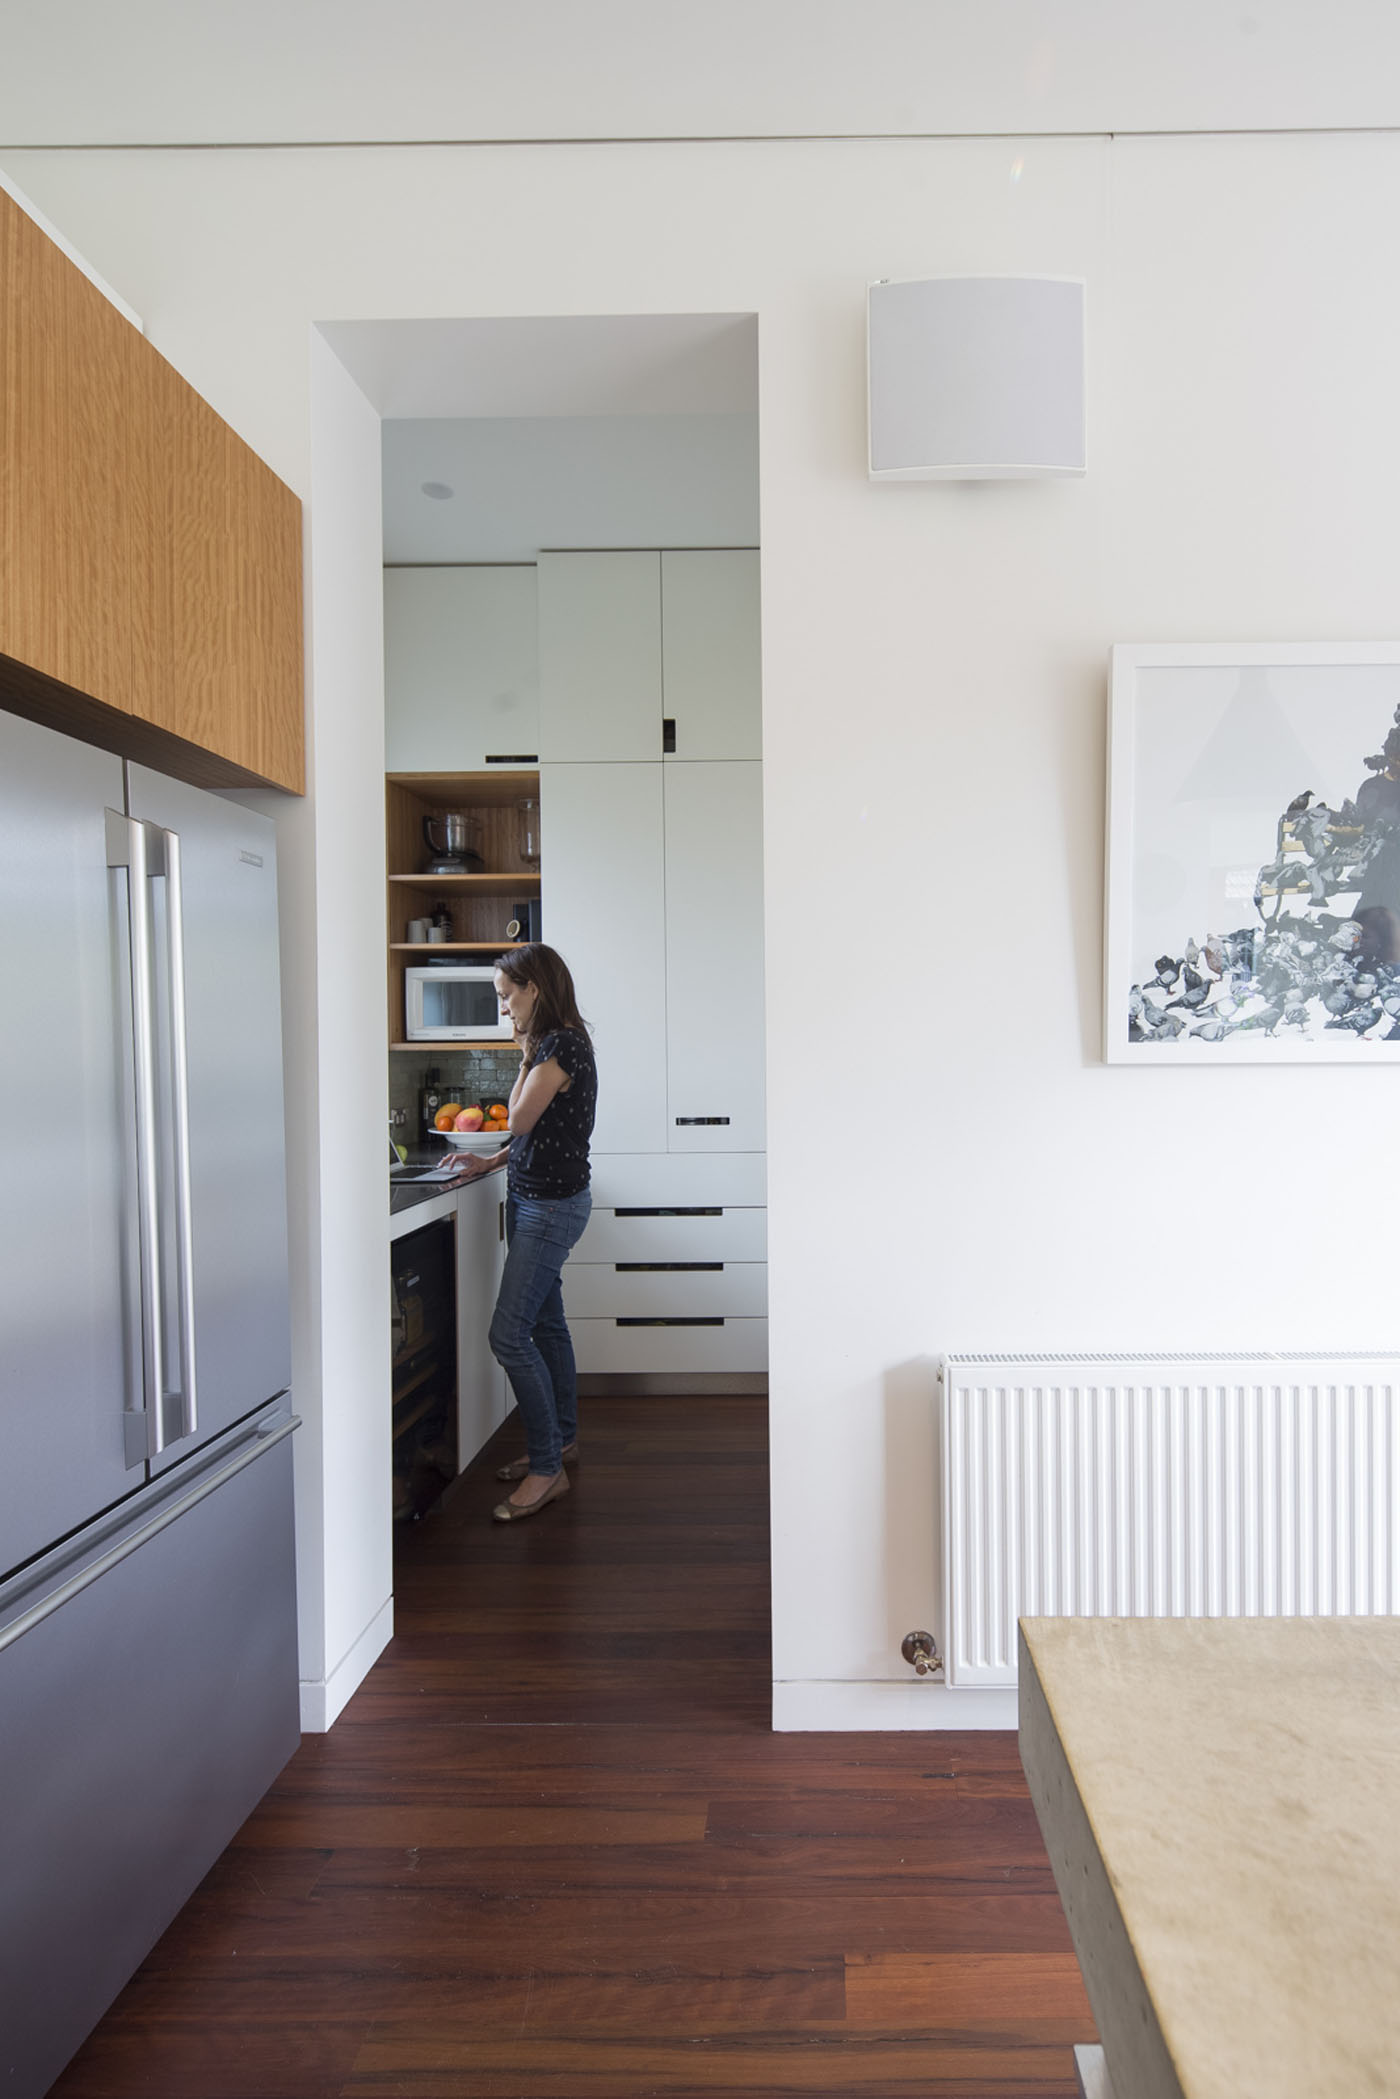 Denney House by Sam Crawford Architects, view to kitchen with person standing